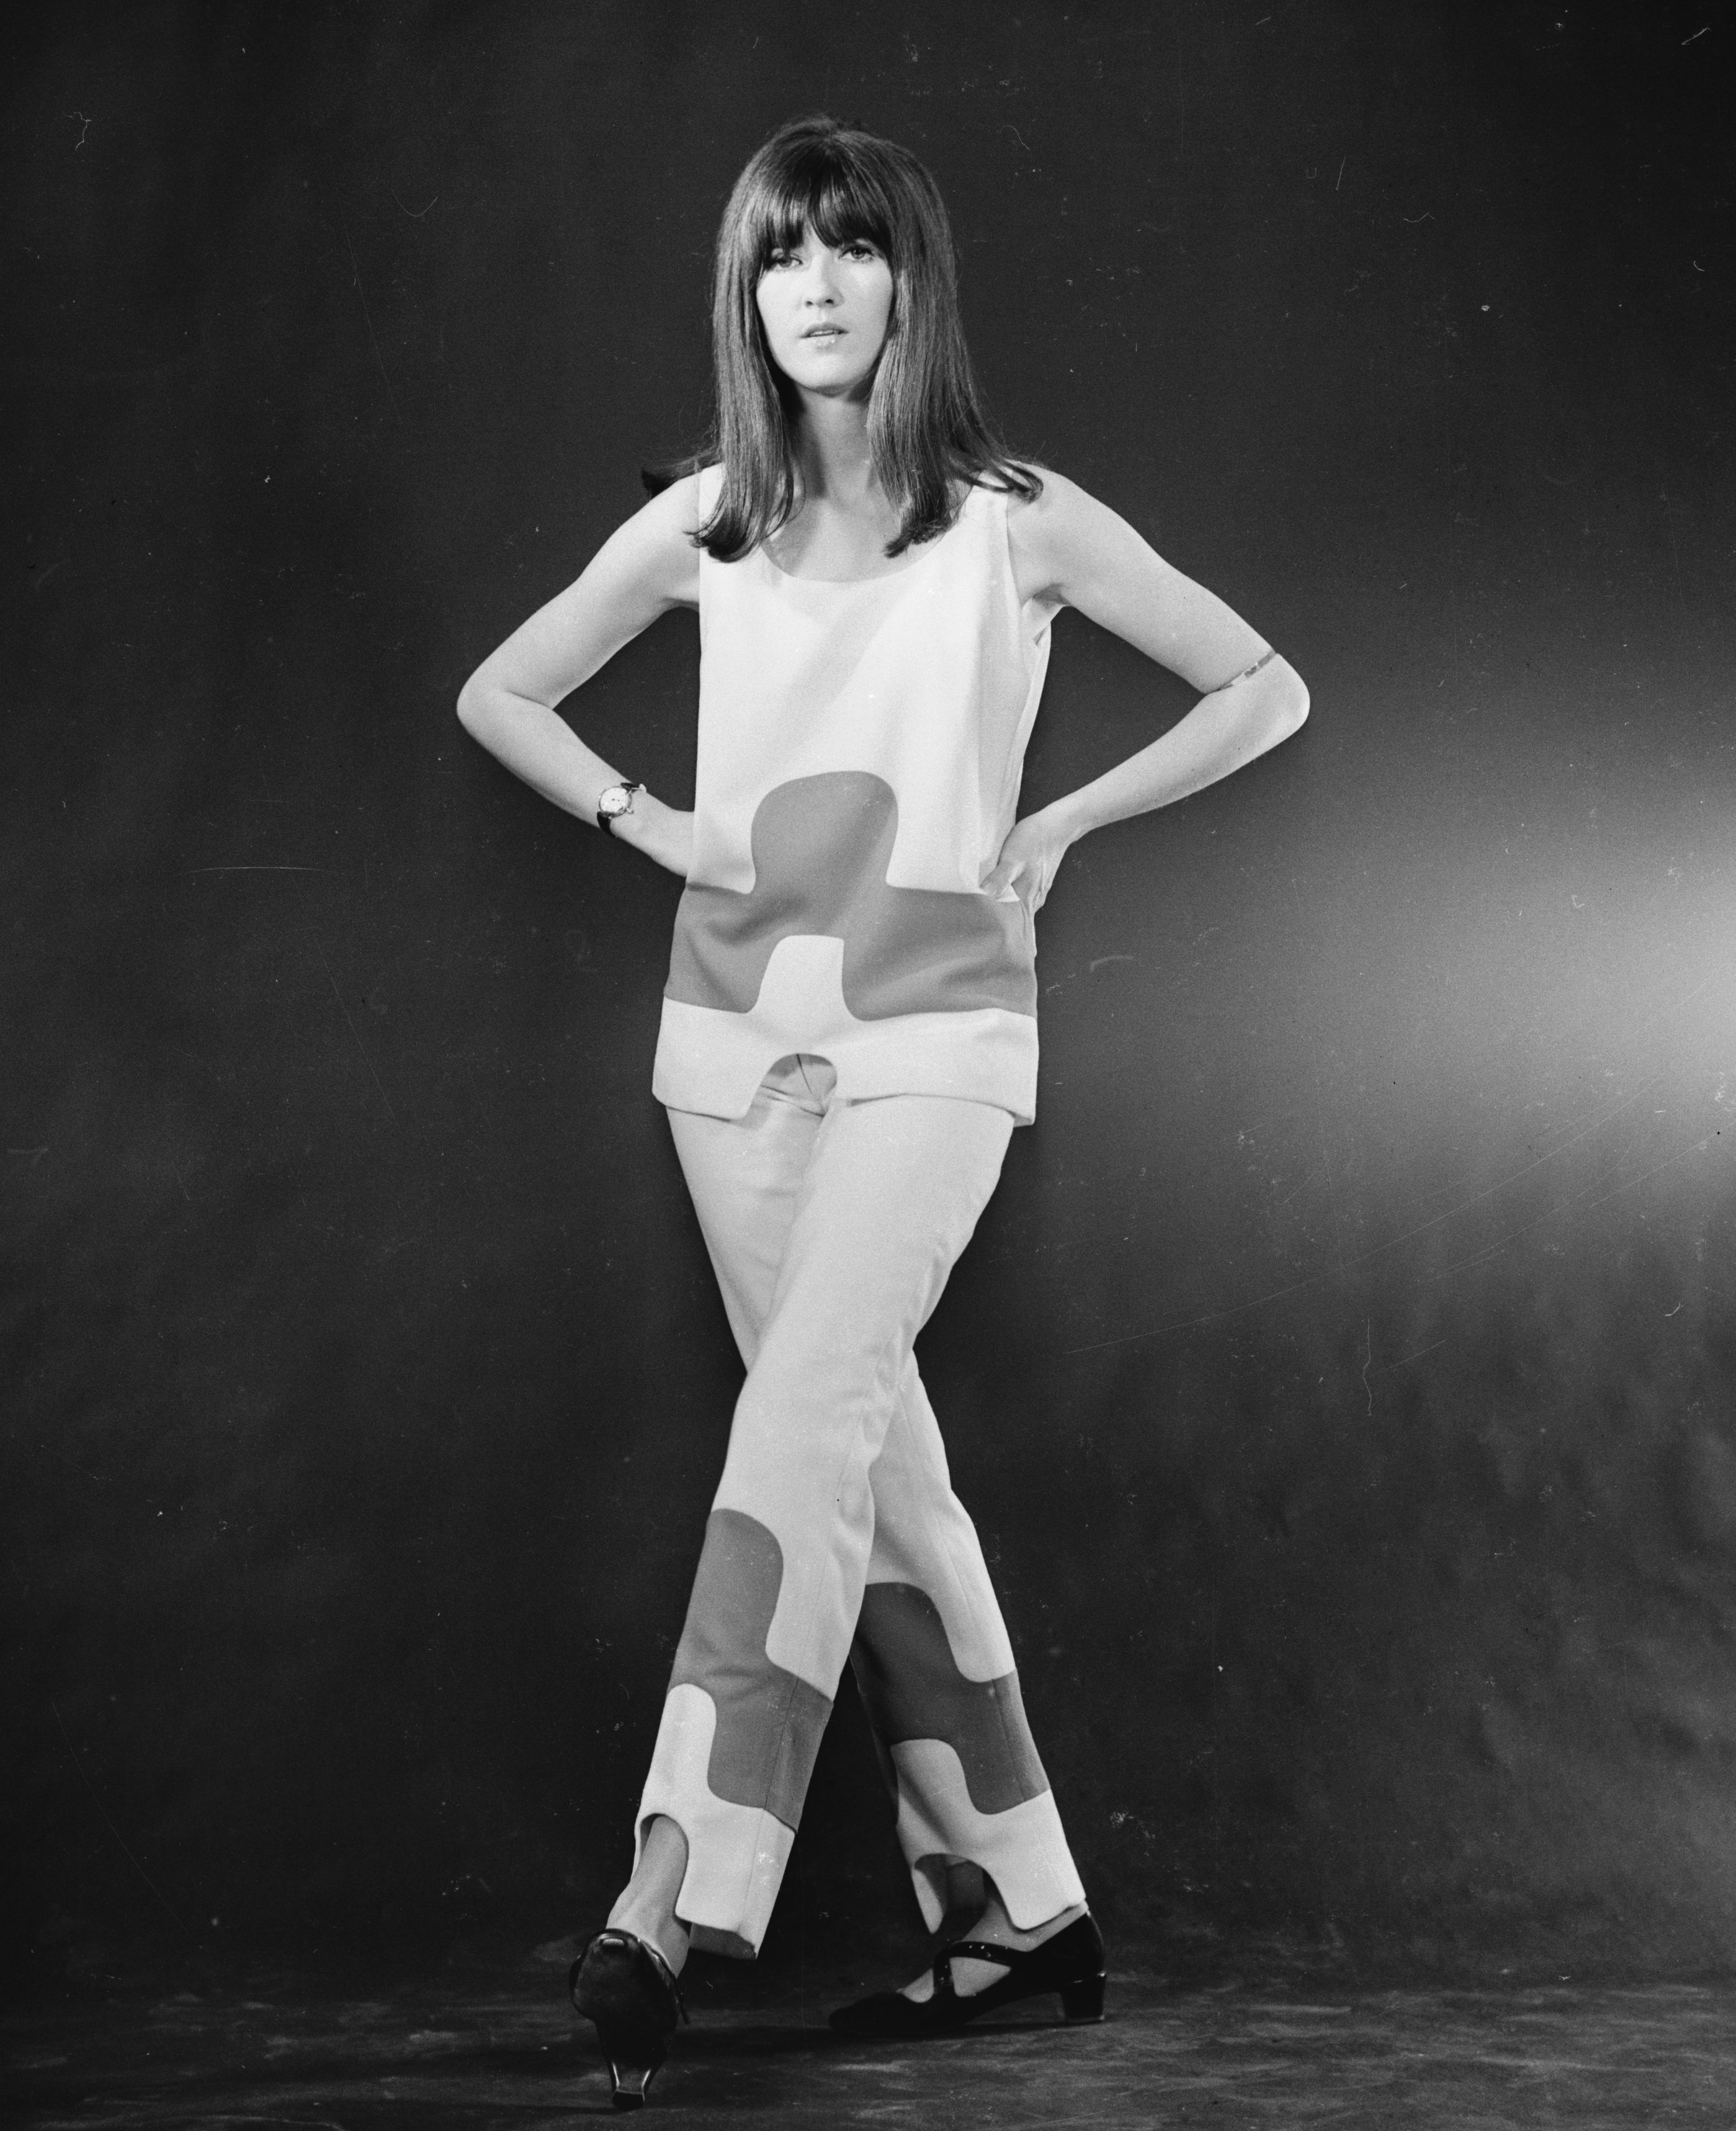 18th August 1965: Hostess of the television pop programme 'Ready Steady Go' Cathy McGowan. (Photo by David Cairns/Express/Getty Images)